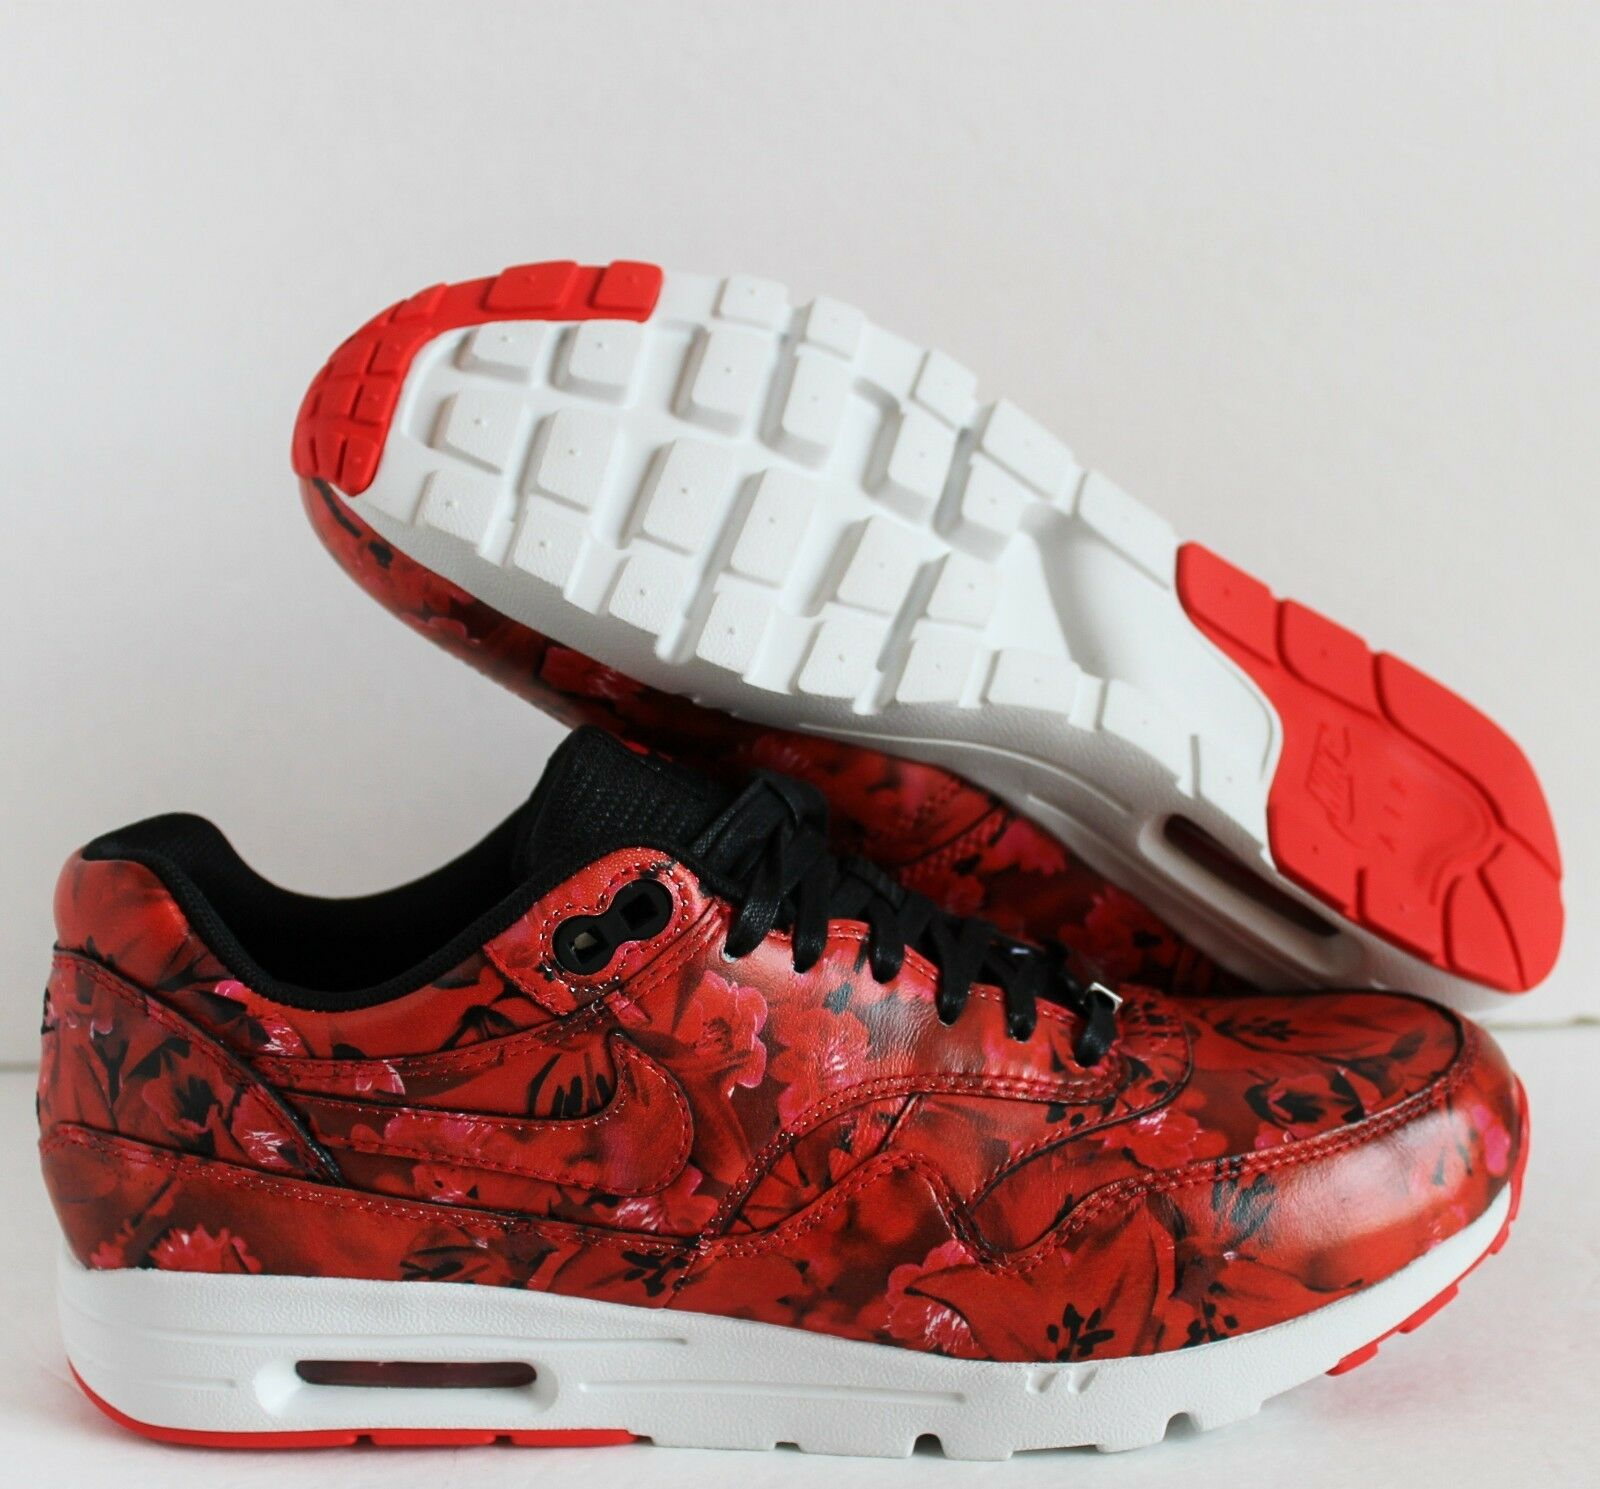 Nike Air Max 1 ULTRA LOTC QS SHANGHAI CITY PACK Red sz 8.5 FLORAL [747105-600]